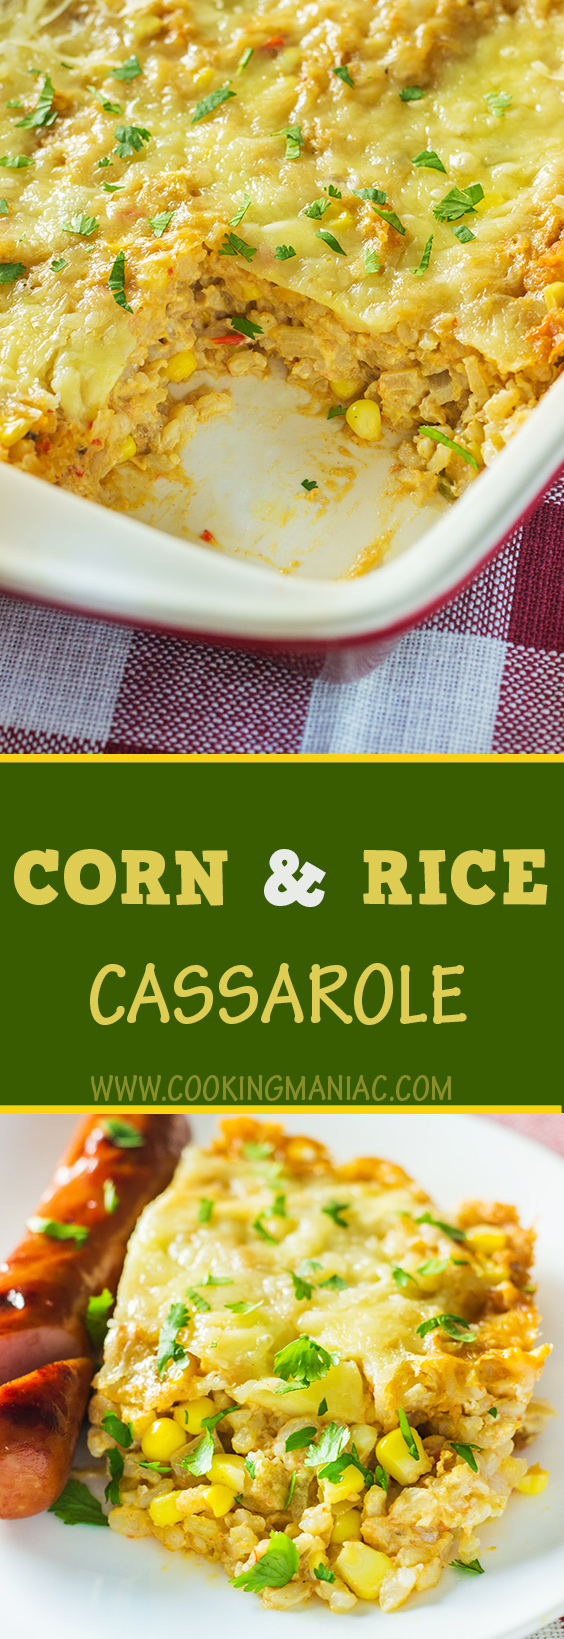 rice-and-corn-cassarole-long-pin